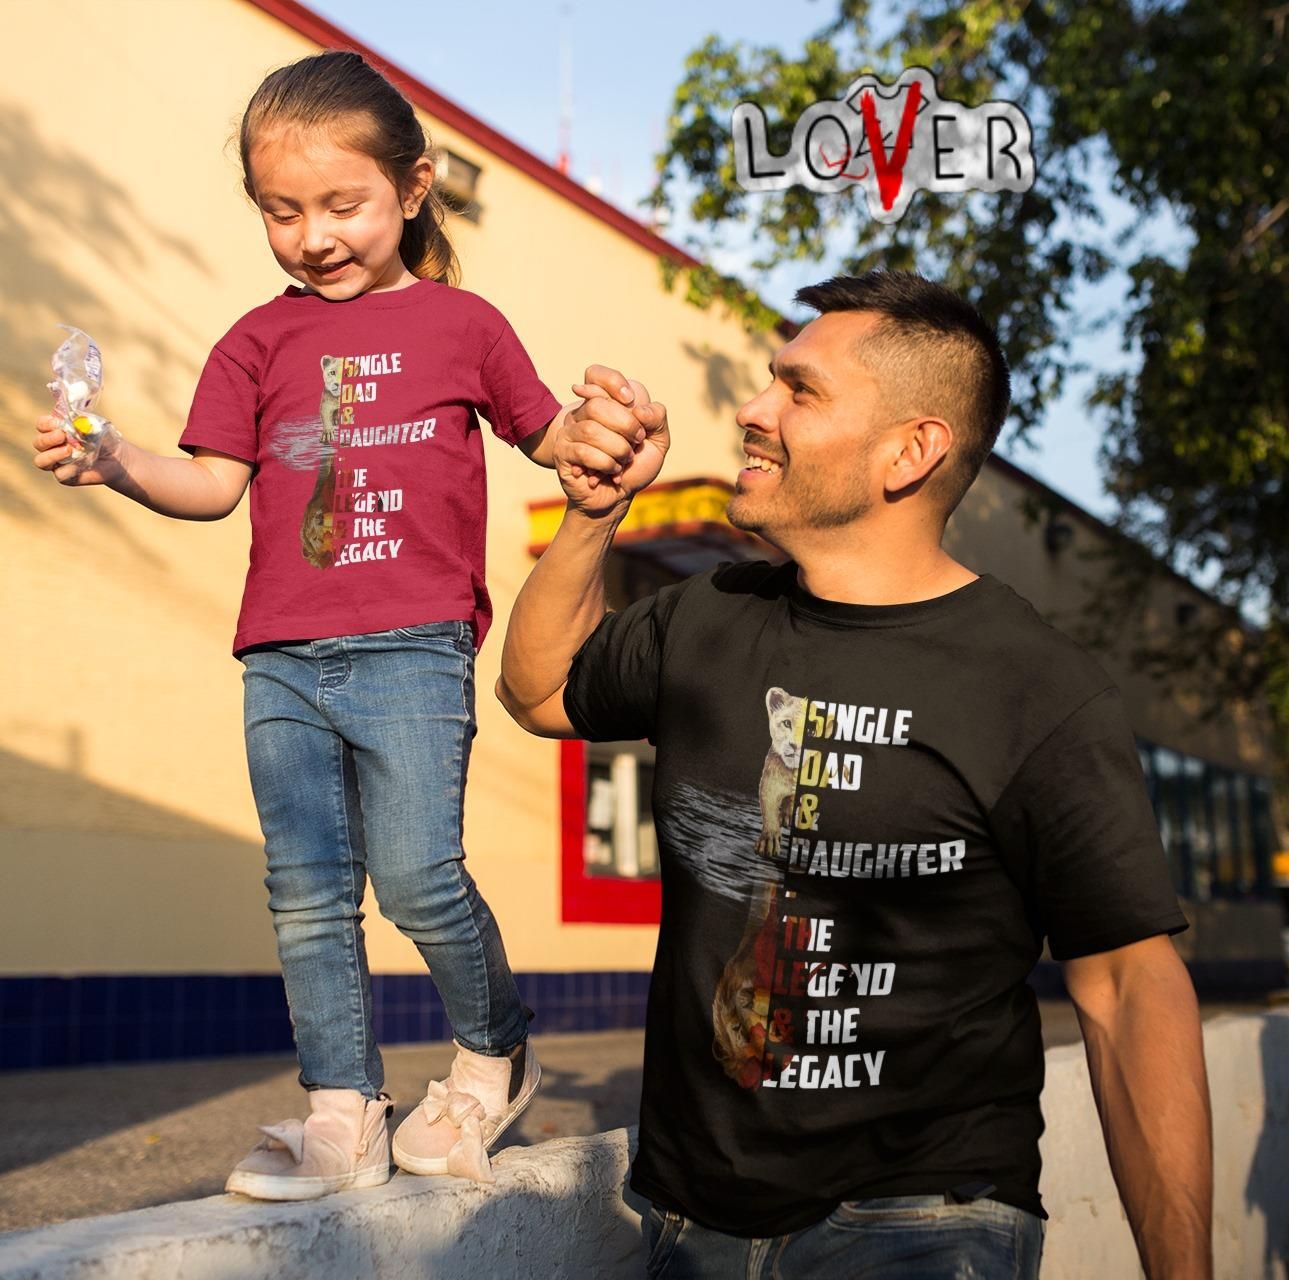 Lion KIng Simba water Single dad and daughter the legend and the legacy shirt